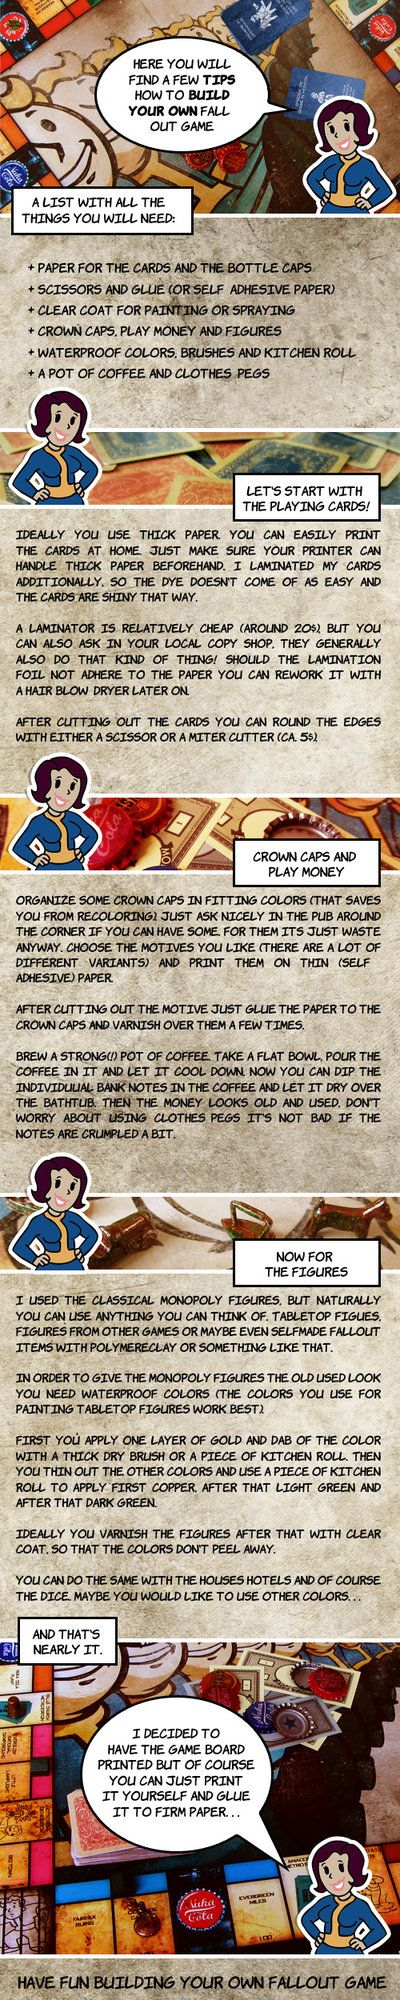 Here you will find a few tips how to build your own fallout game. It doesn't matter if you would like to build a monopoly game or any other board game! Background: